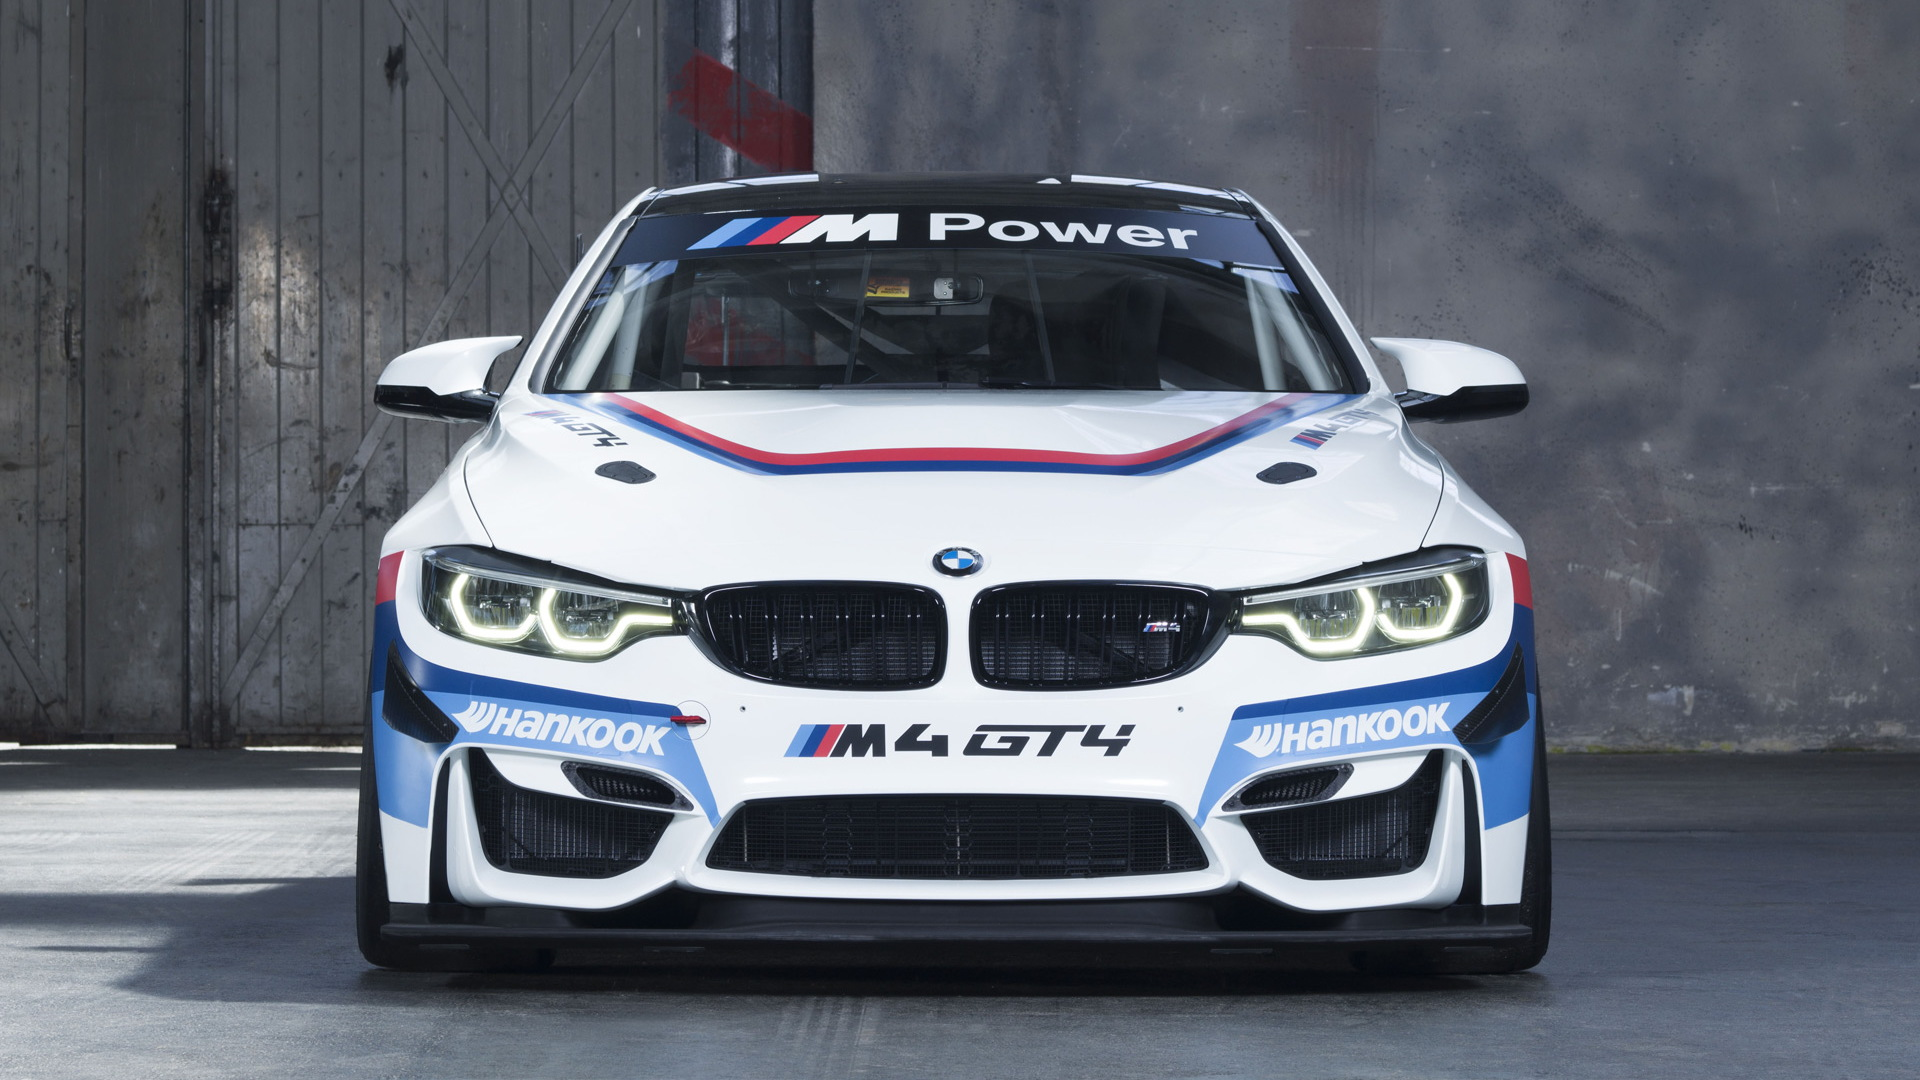 2018 BMW M4 GT4 race car